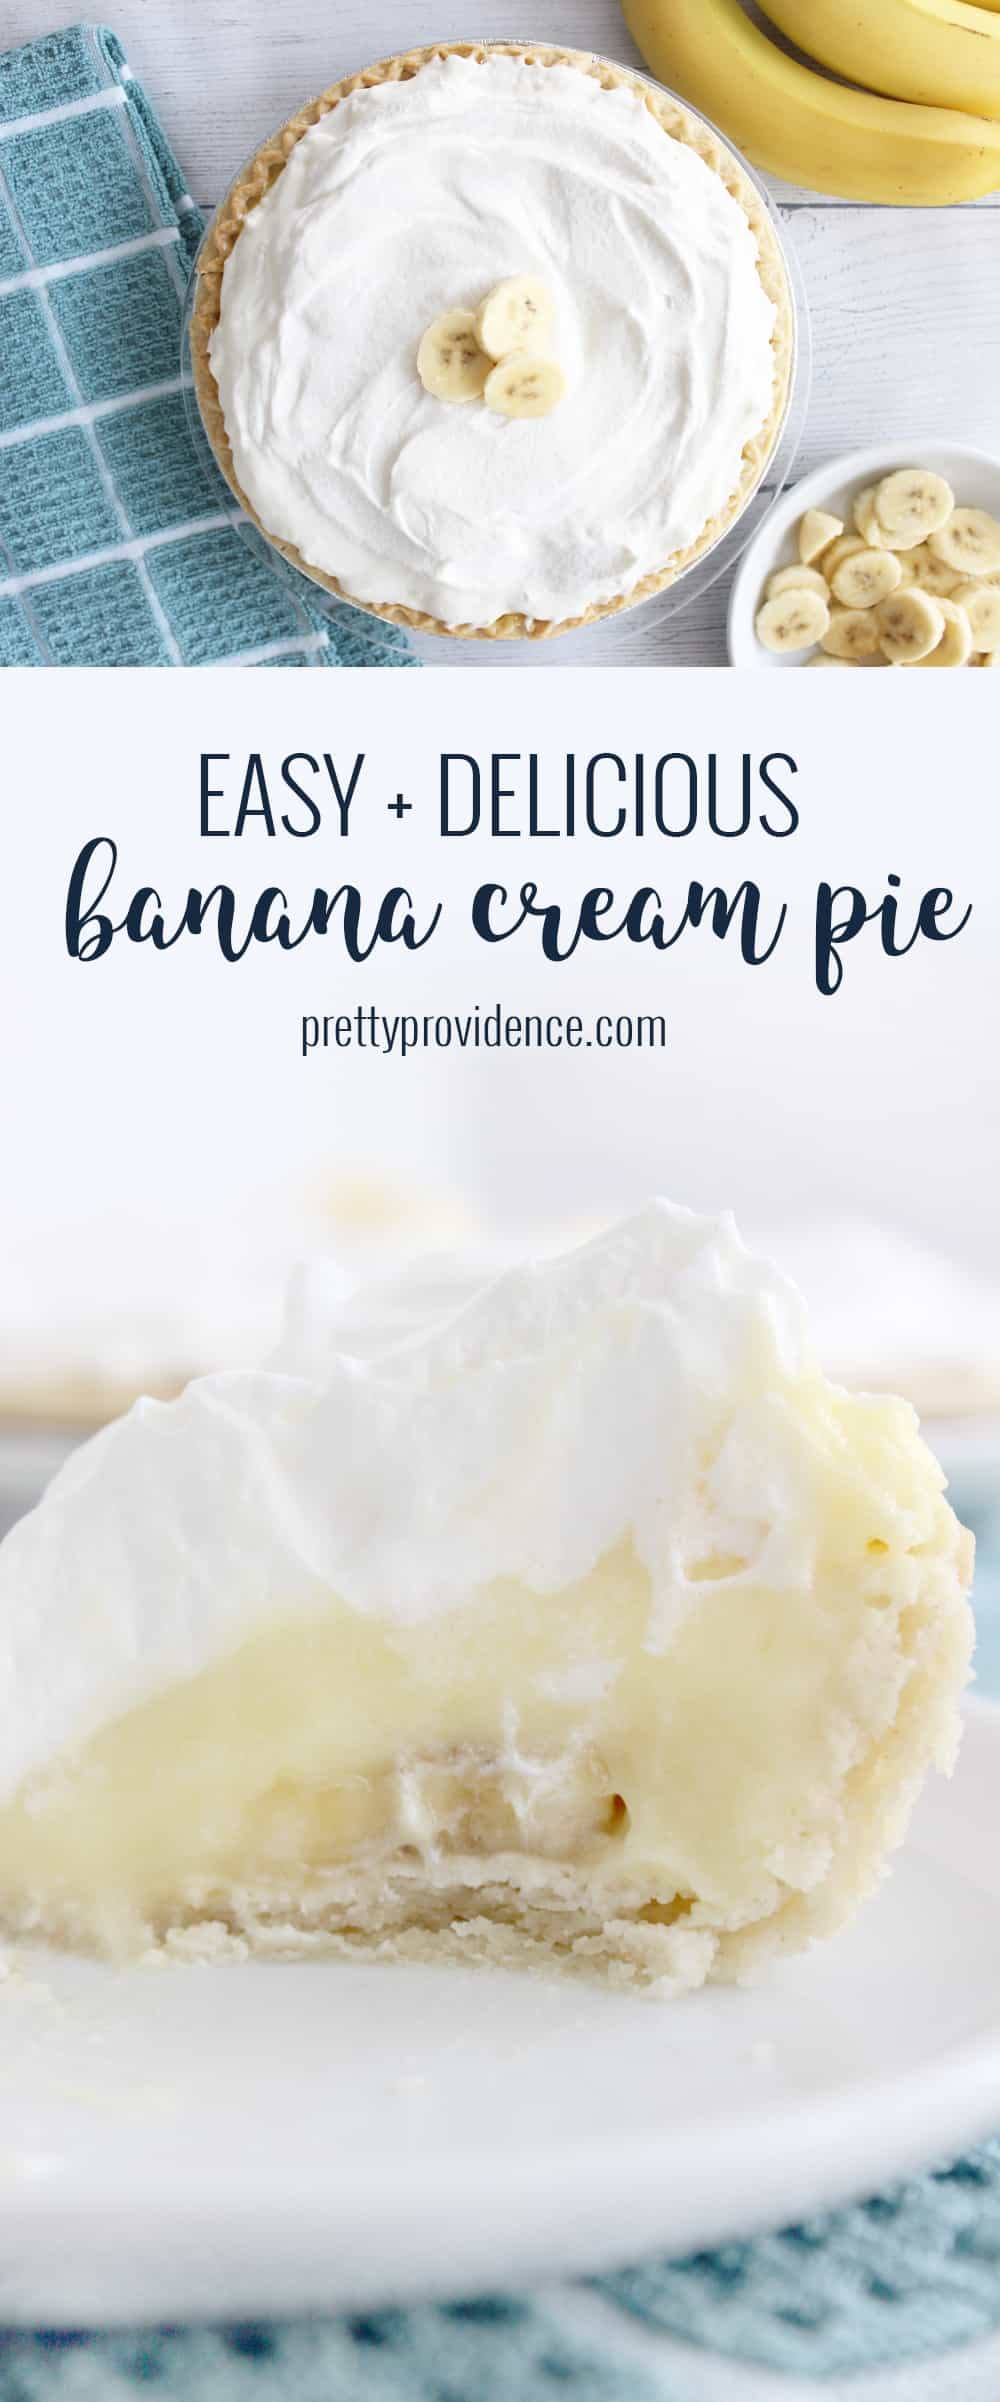 A banana cream pie recipe so delicious you won't believe how easy it is to make! #bananacreampie #easybananacreampierecipe #bananacreampierecipe #easypierecipe #bananacreampiewithpudding